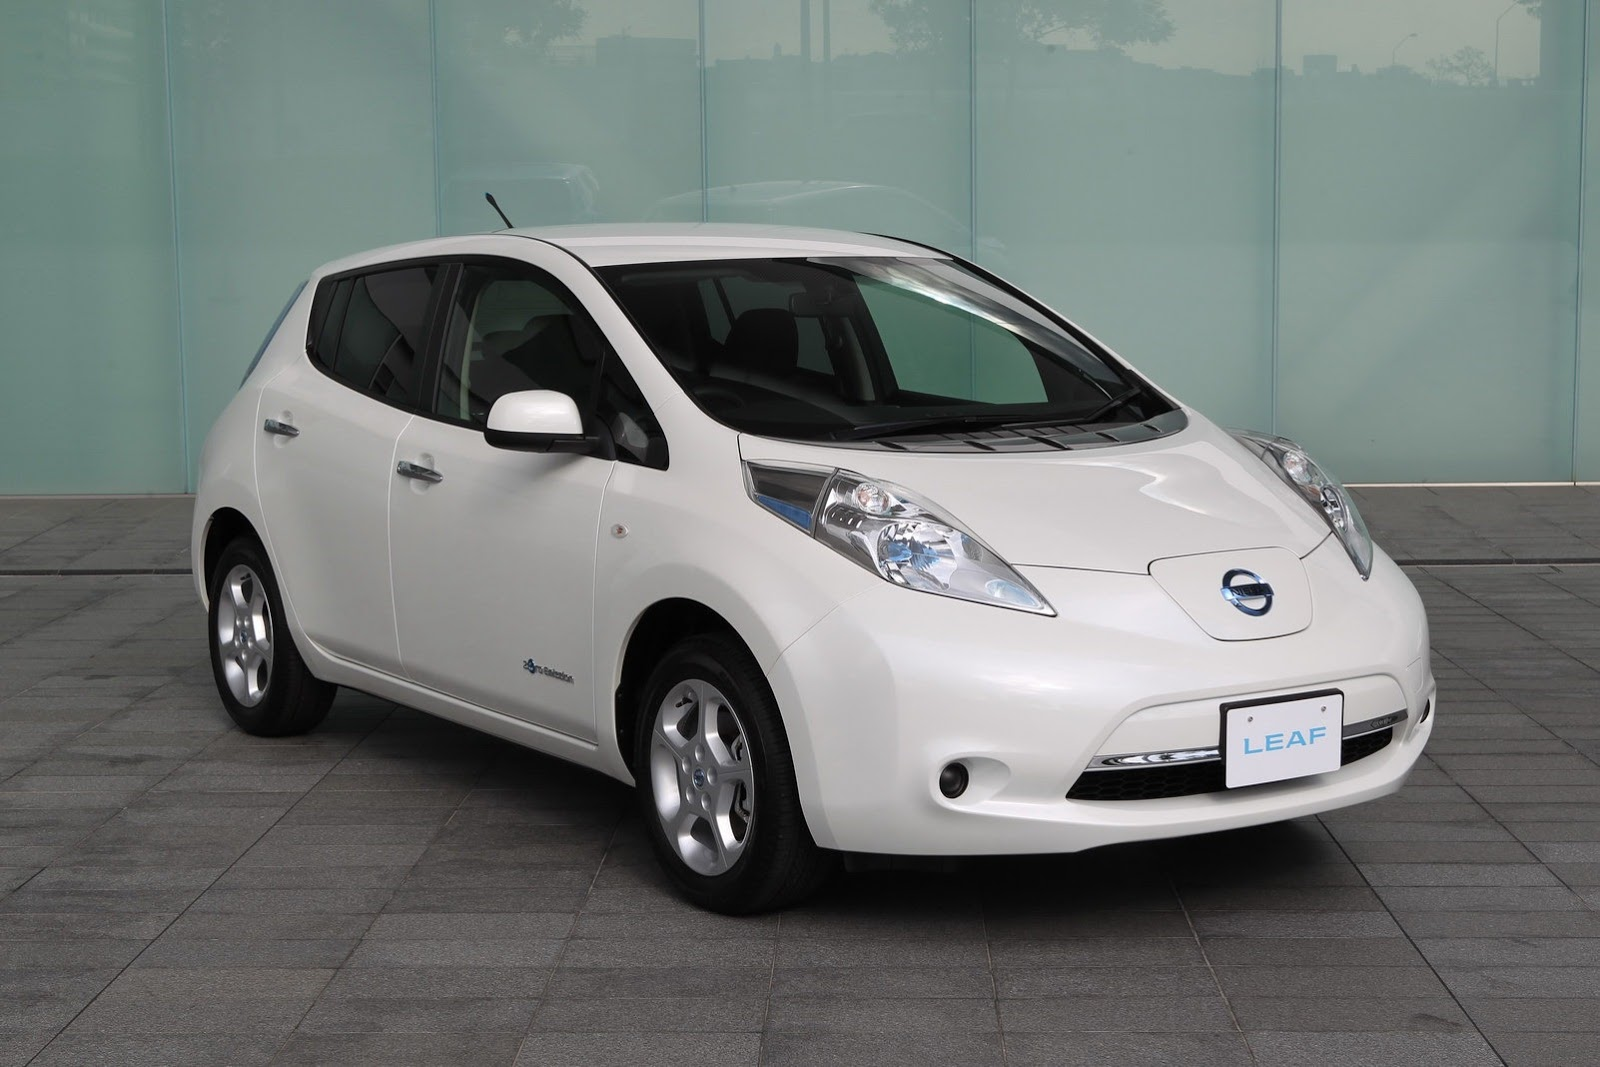 2013 nissan leaf information and photos zombiedrive 2013 nissan leaf 19 nissan leaf 19 vanachro Choice Image